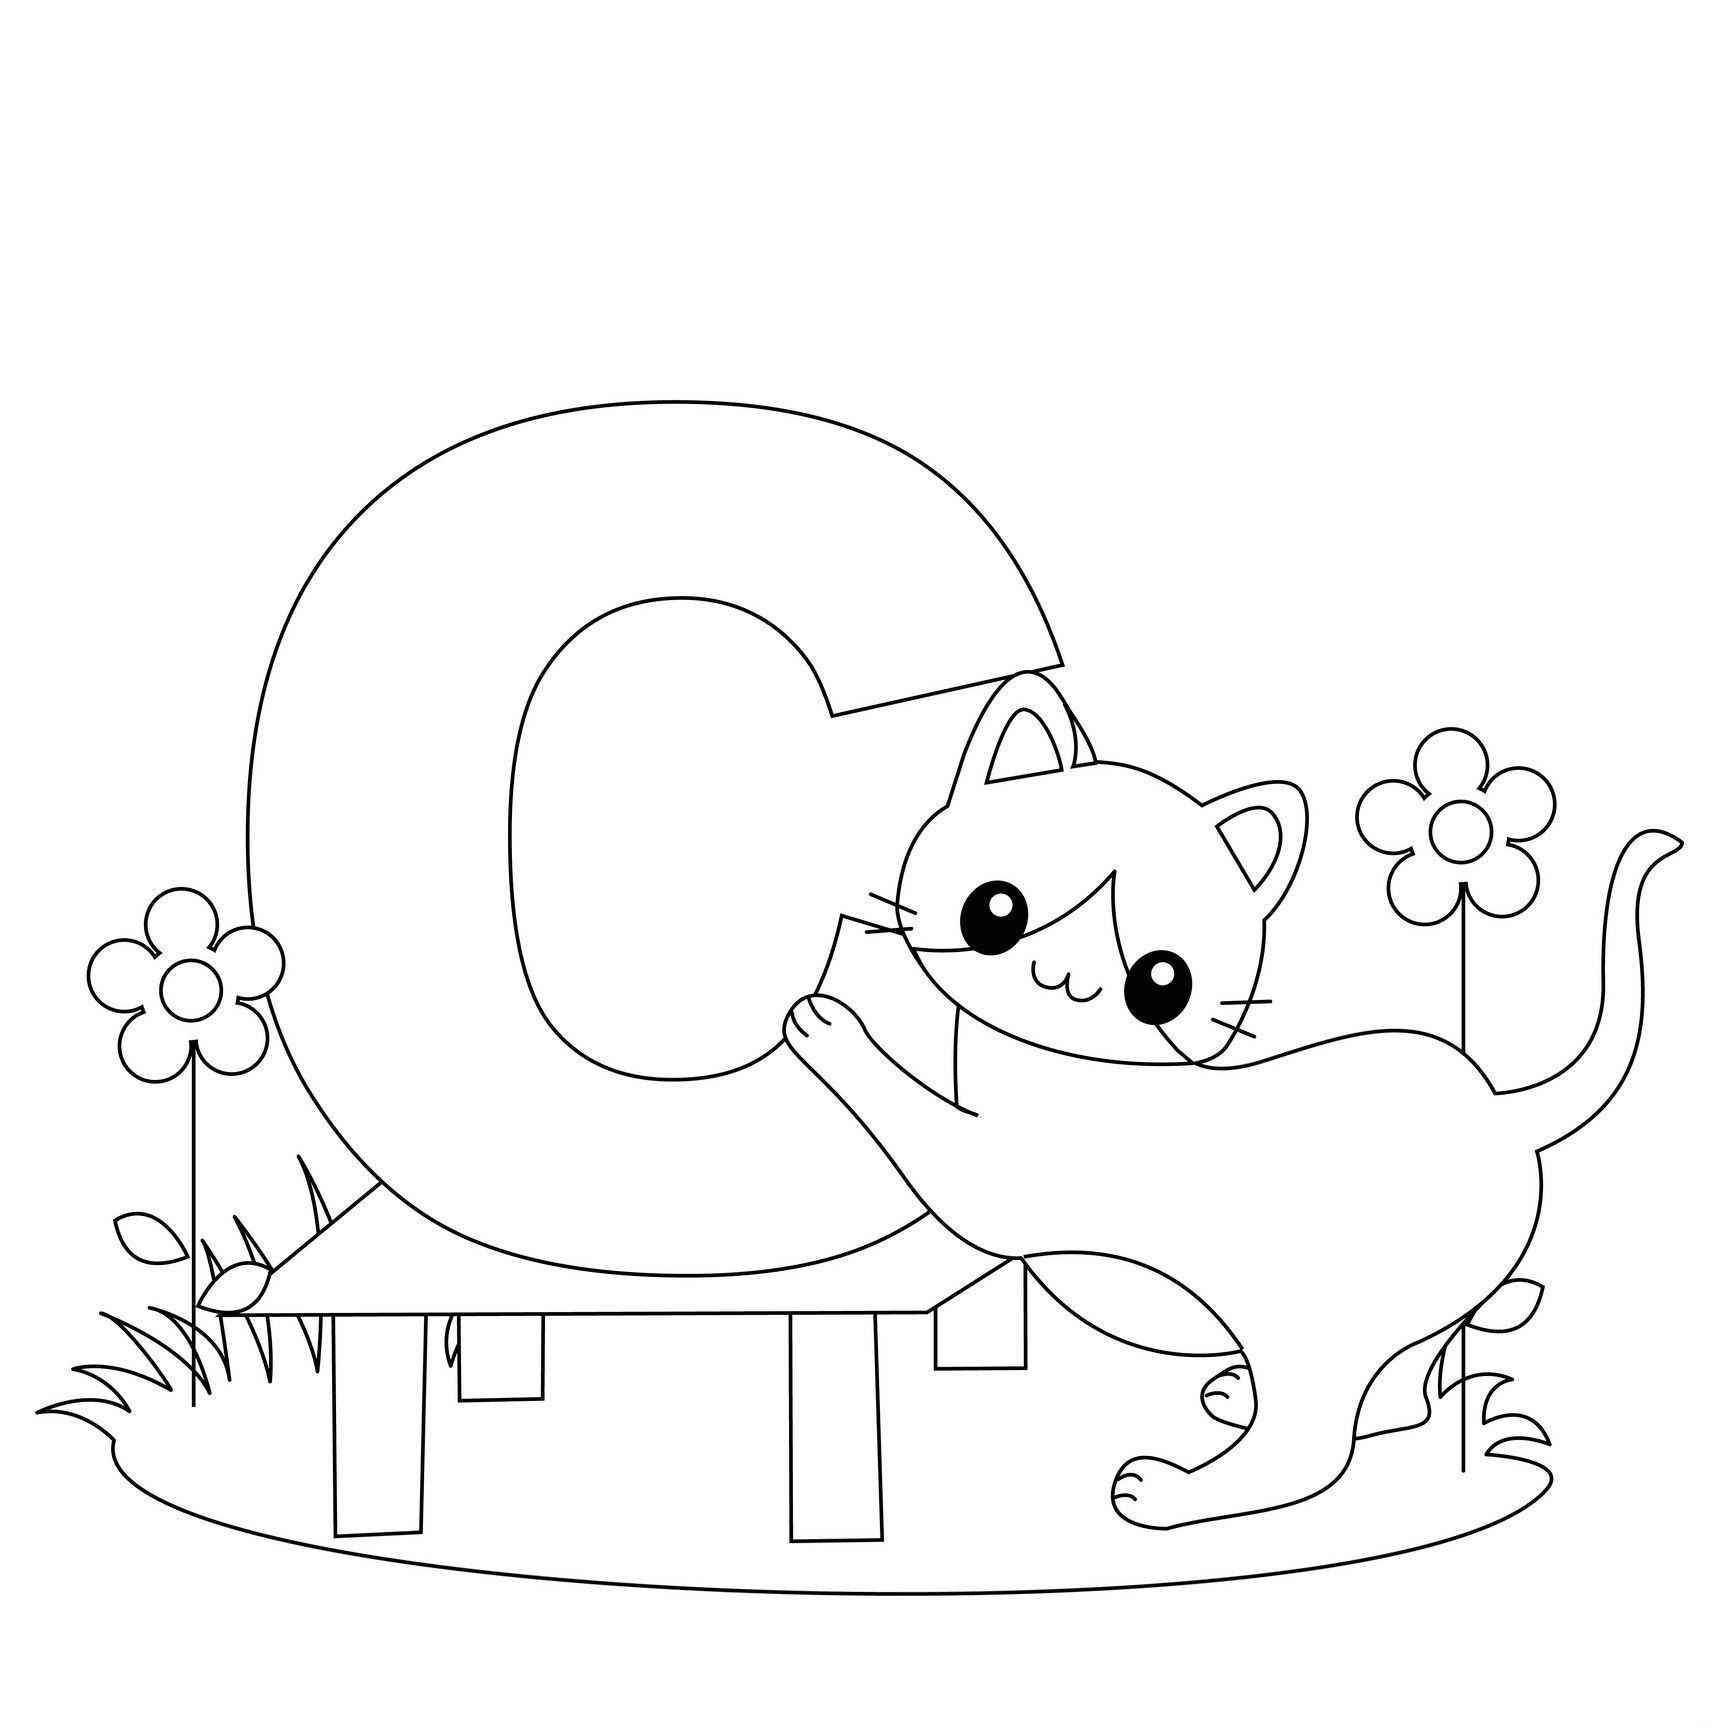 Free Coloring Pages Animal Alphabet Inspirationa Alphabet Coloring - Free Alphabet Coloring Printables